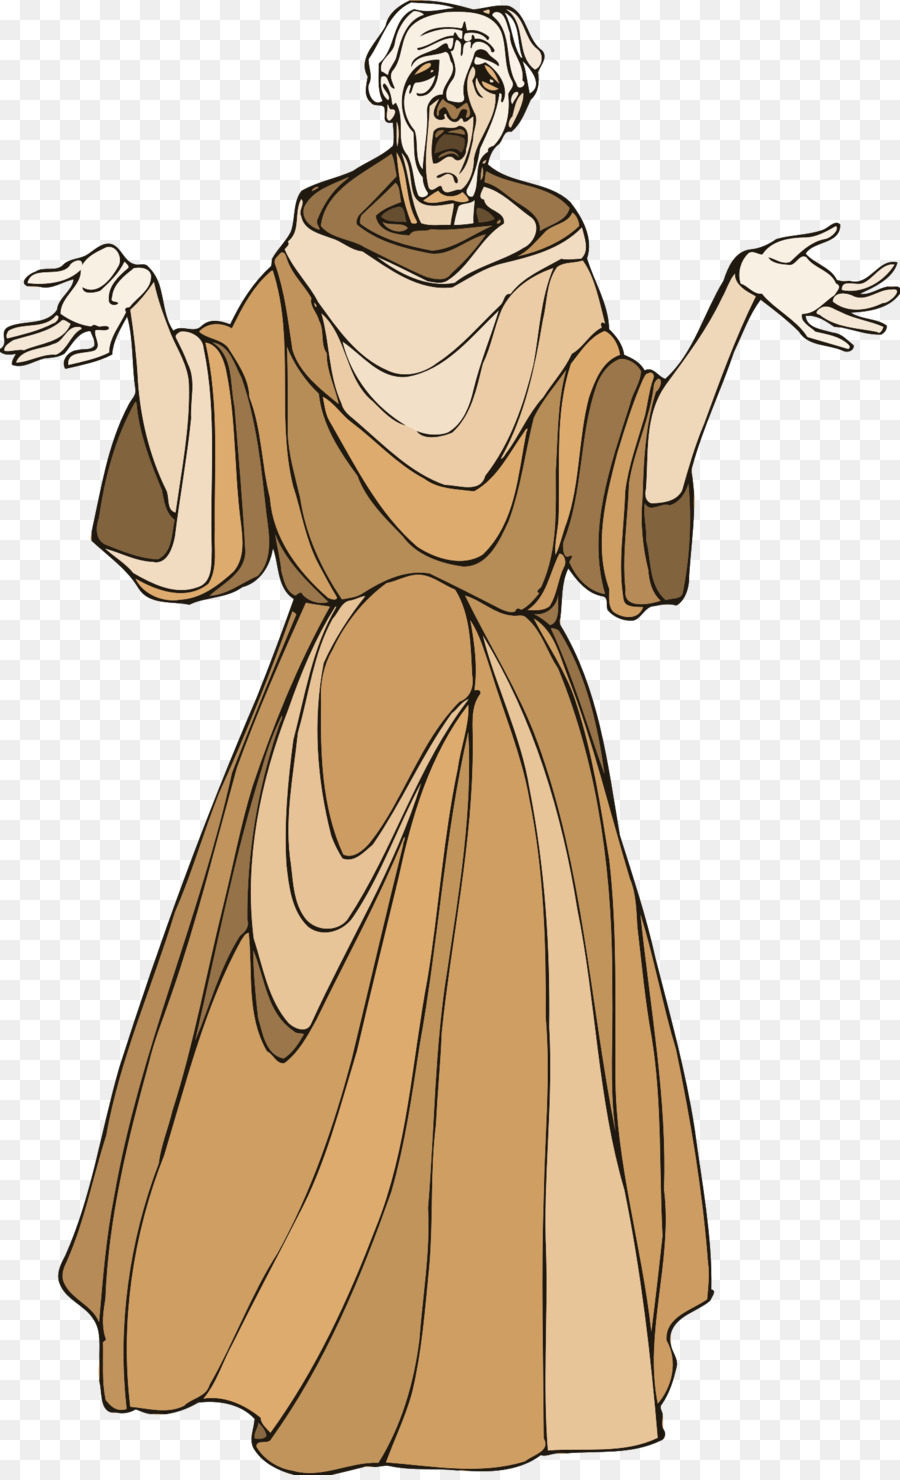 shakespeare characters monk clipart Twelfth Night.